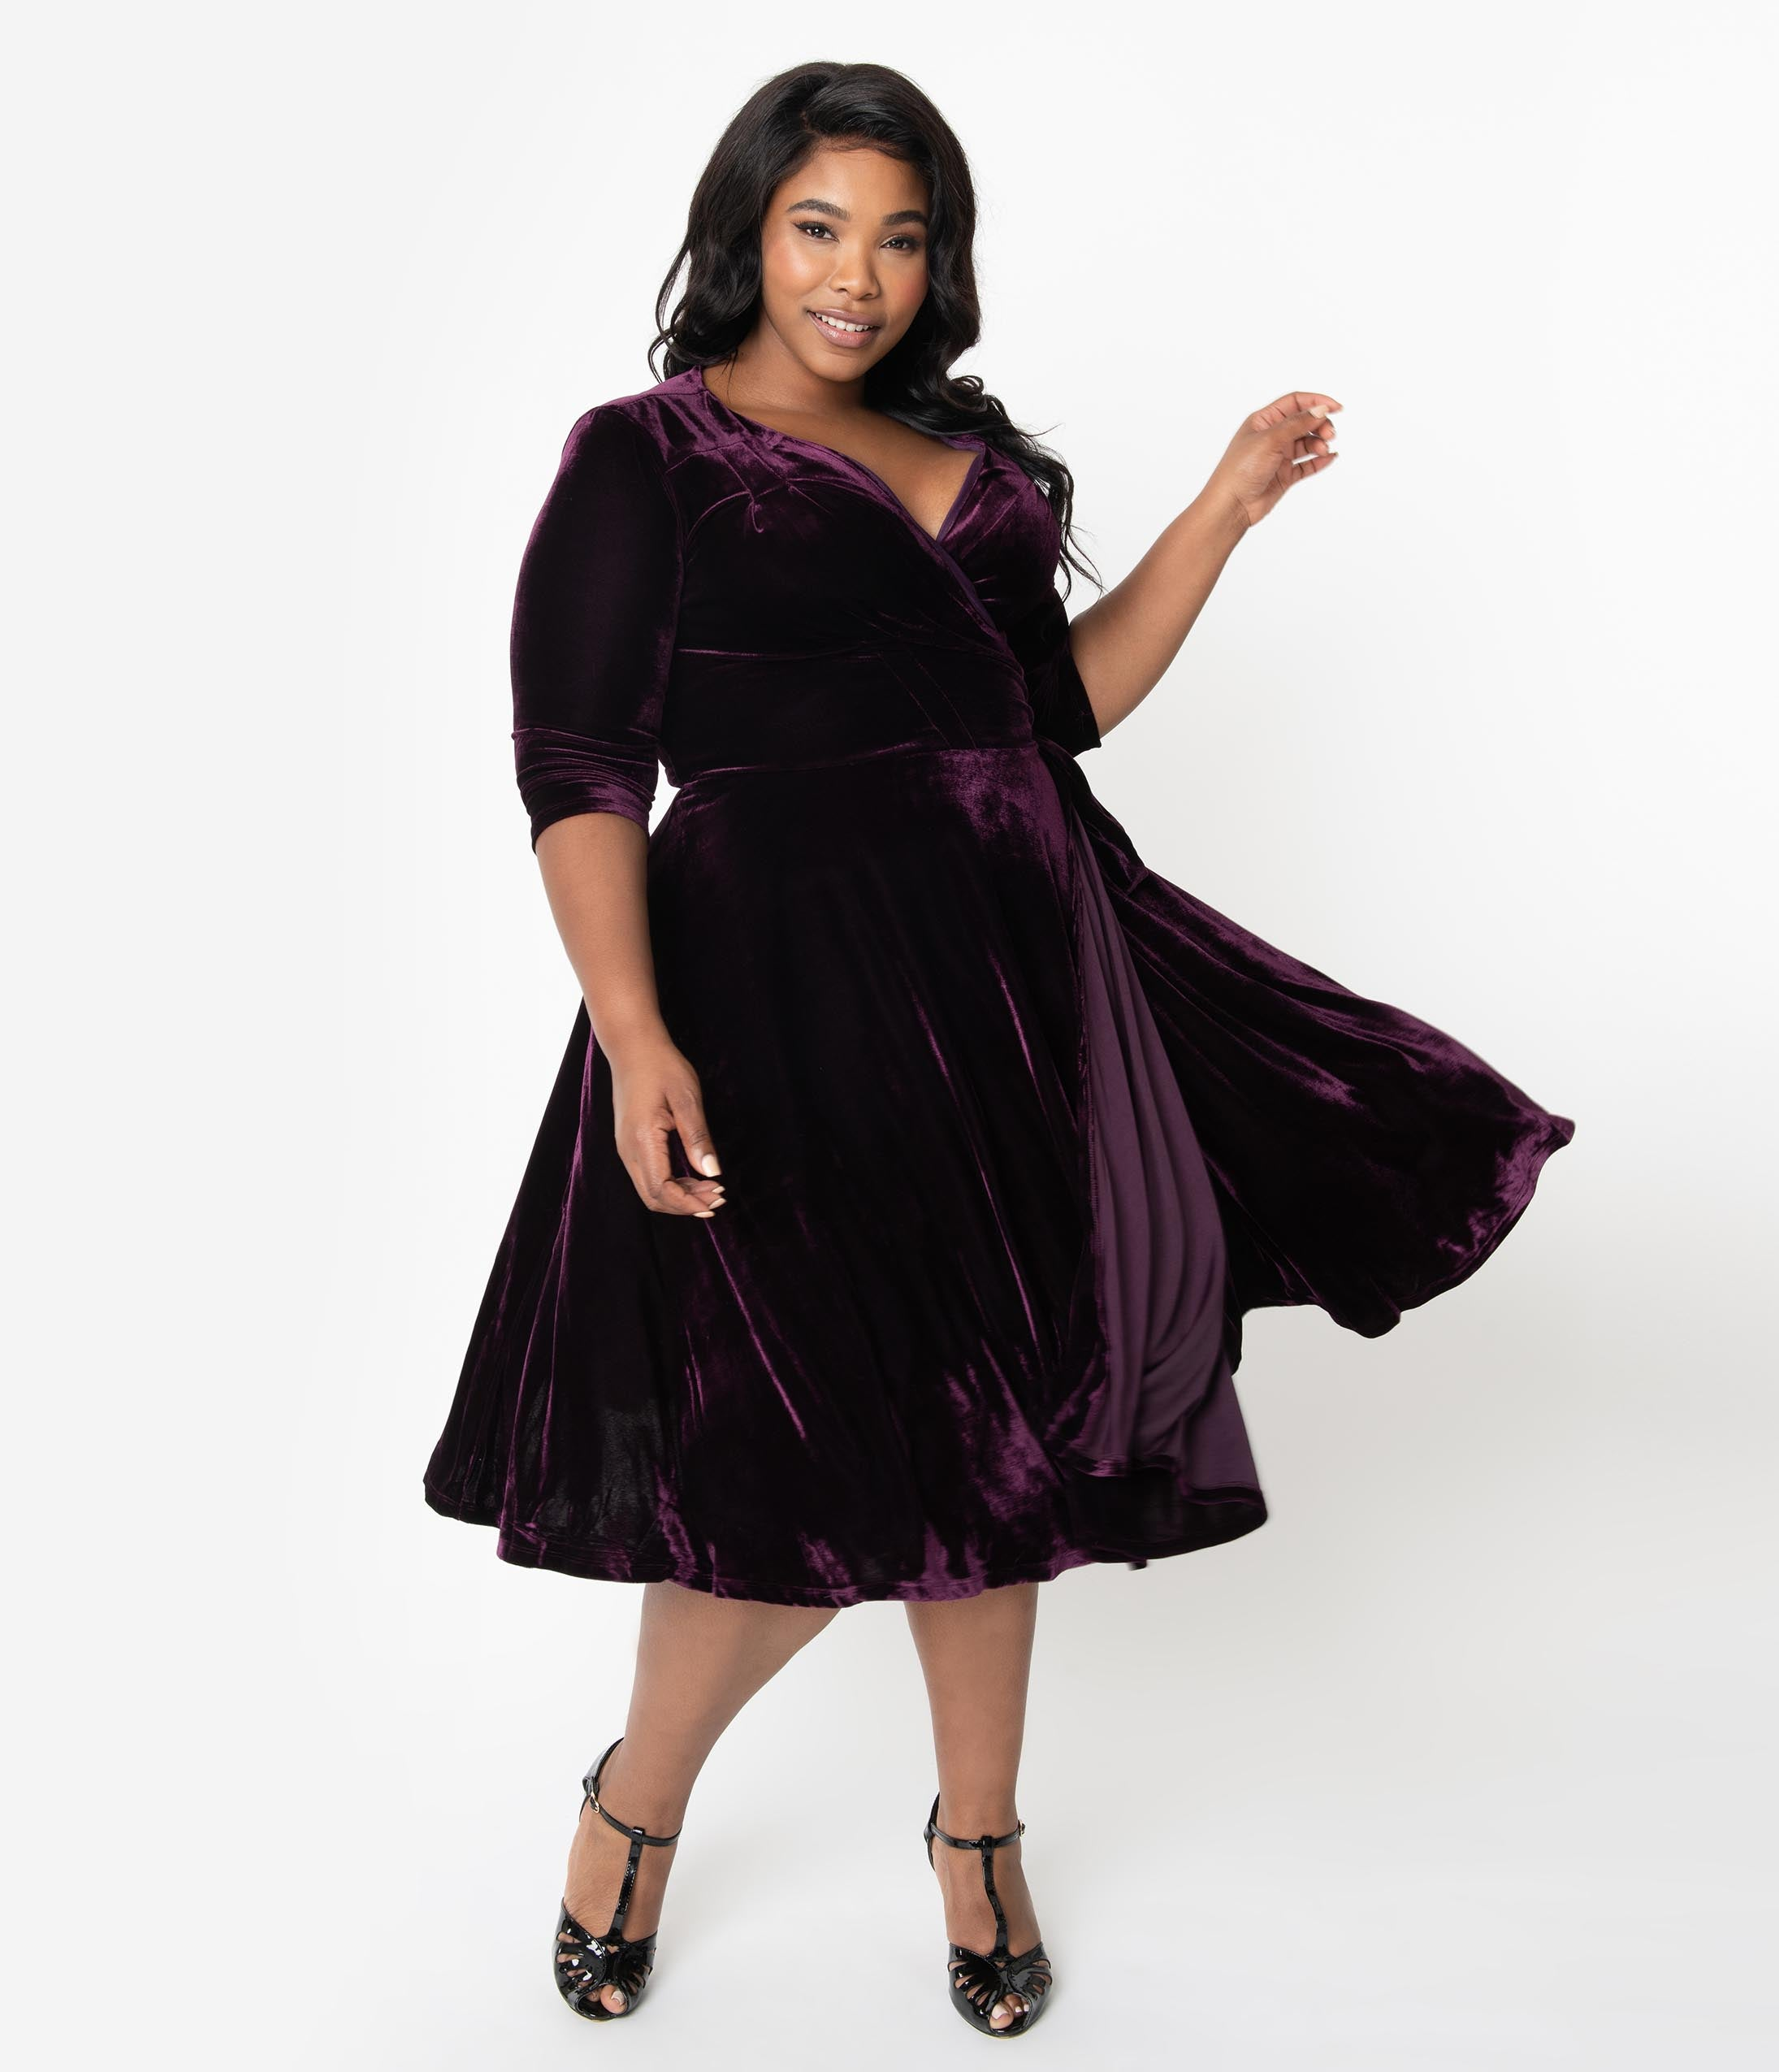 1940s Cocktail Dresses, Party Dresses Unique Vintage Plus Size 1940S Style Eggplant Purple Velvet Kelsie Wrap Dress $98.00 AT vintagedancer.com